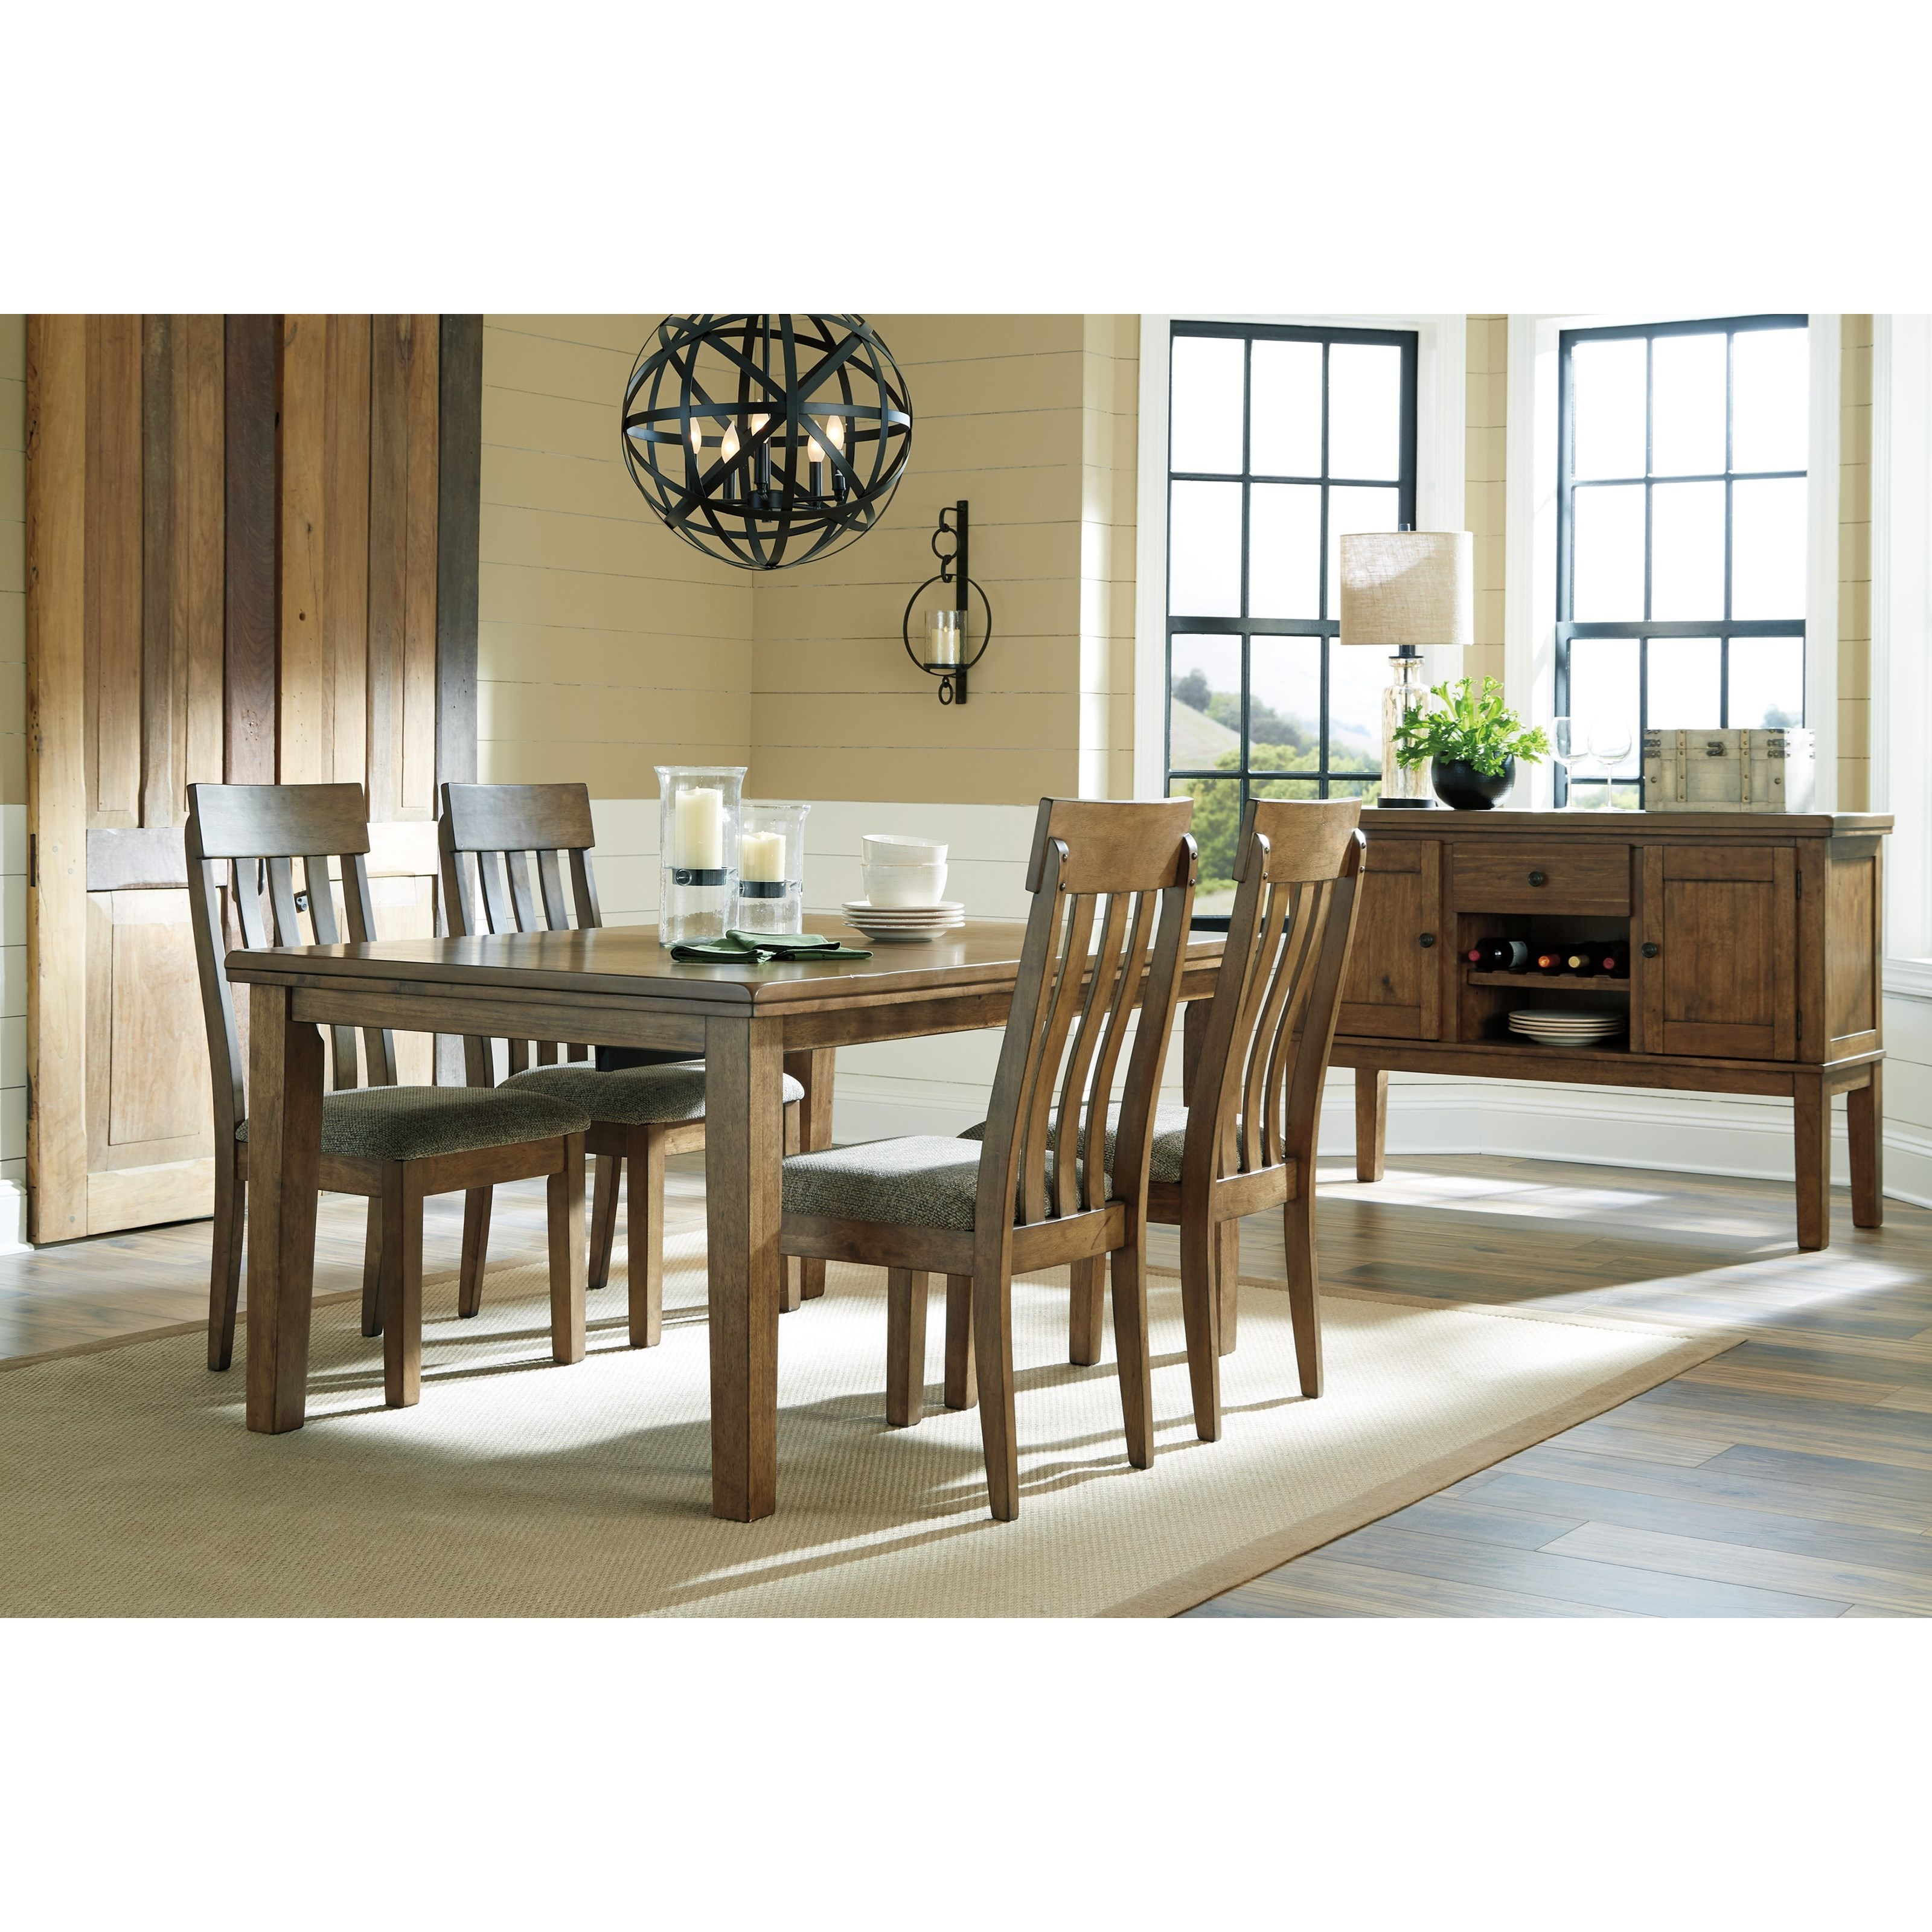 flaybern casual dining room group becker furniture world. Black Bedroom Furniture Sets. Home Design Ideas